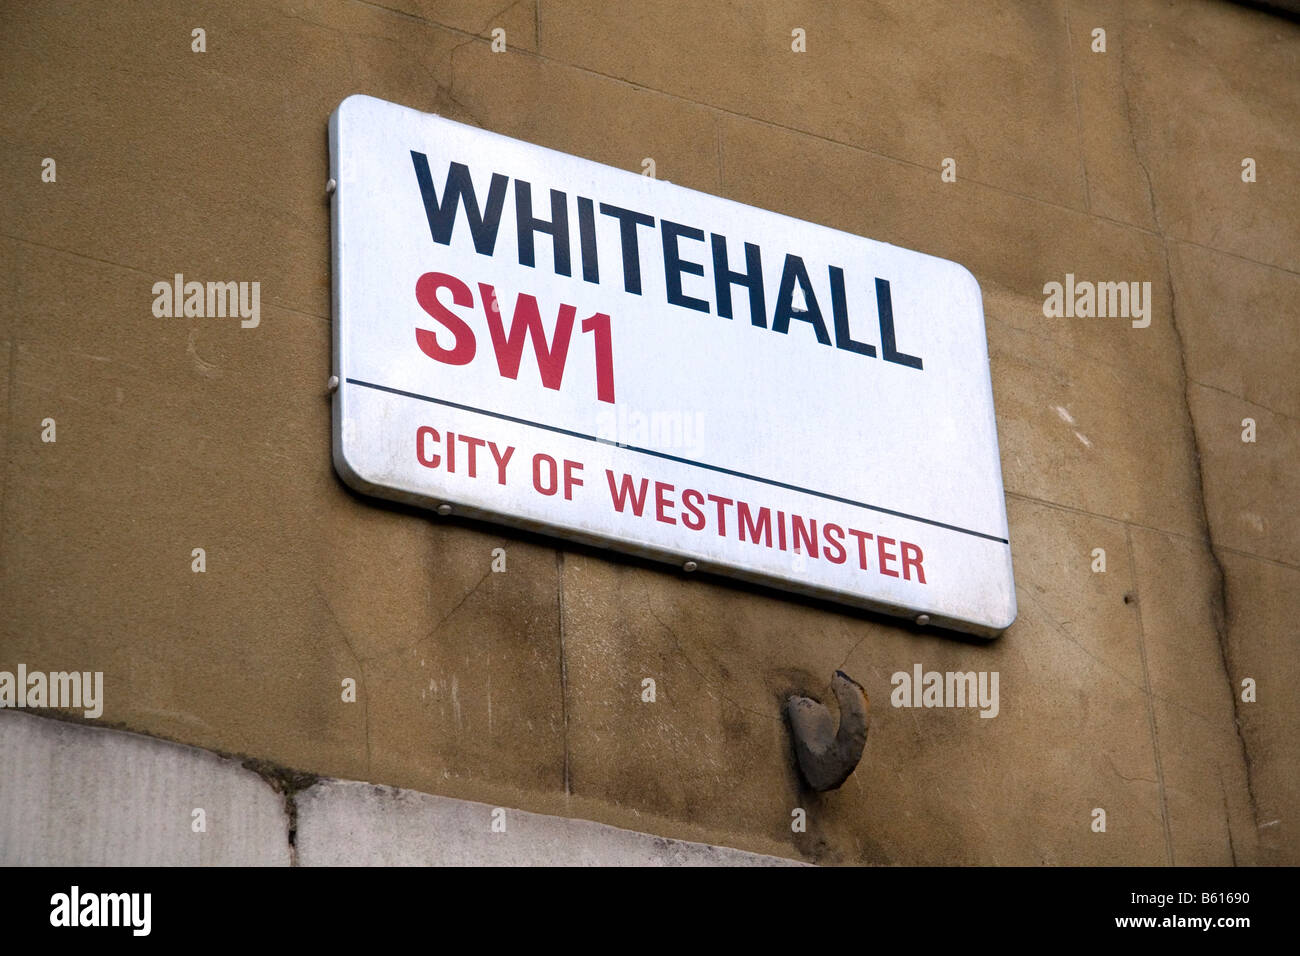 Street sign for Whitehall in London England - Stock Image